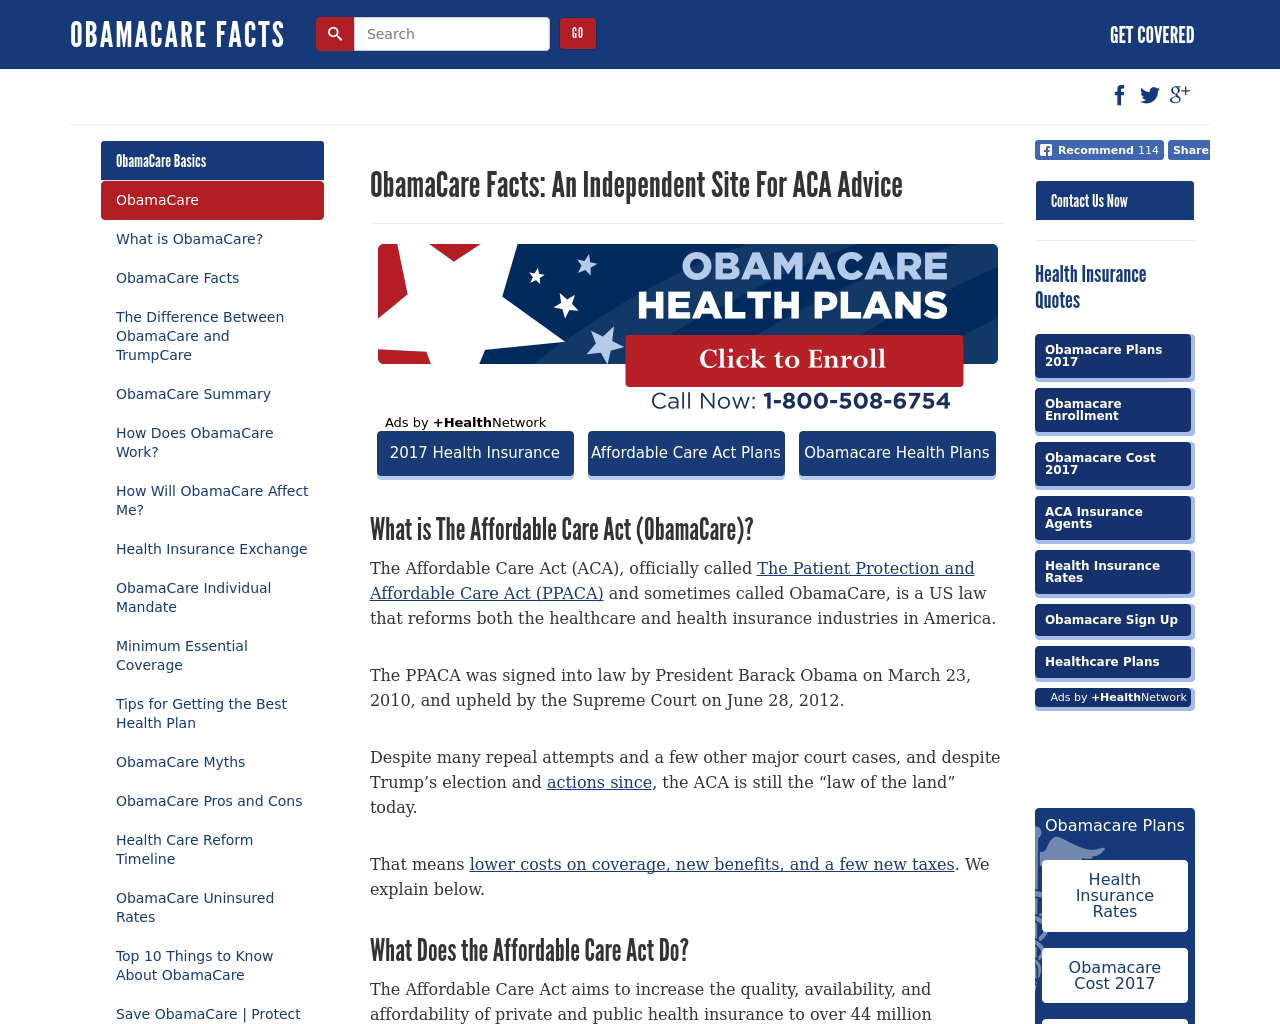 ObamaCare-Facts-Advertising-Reviews-Pricing